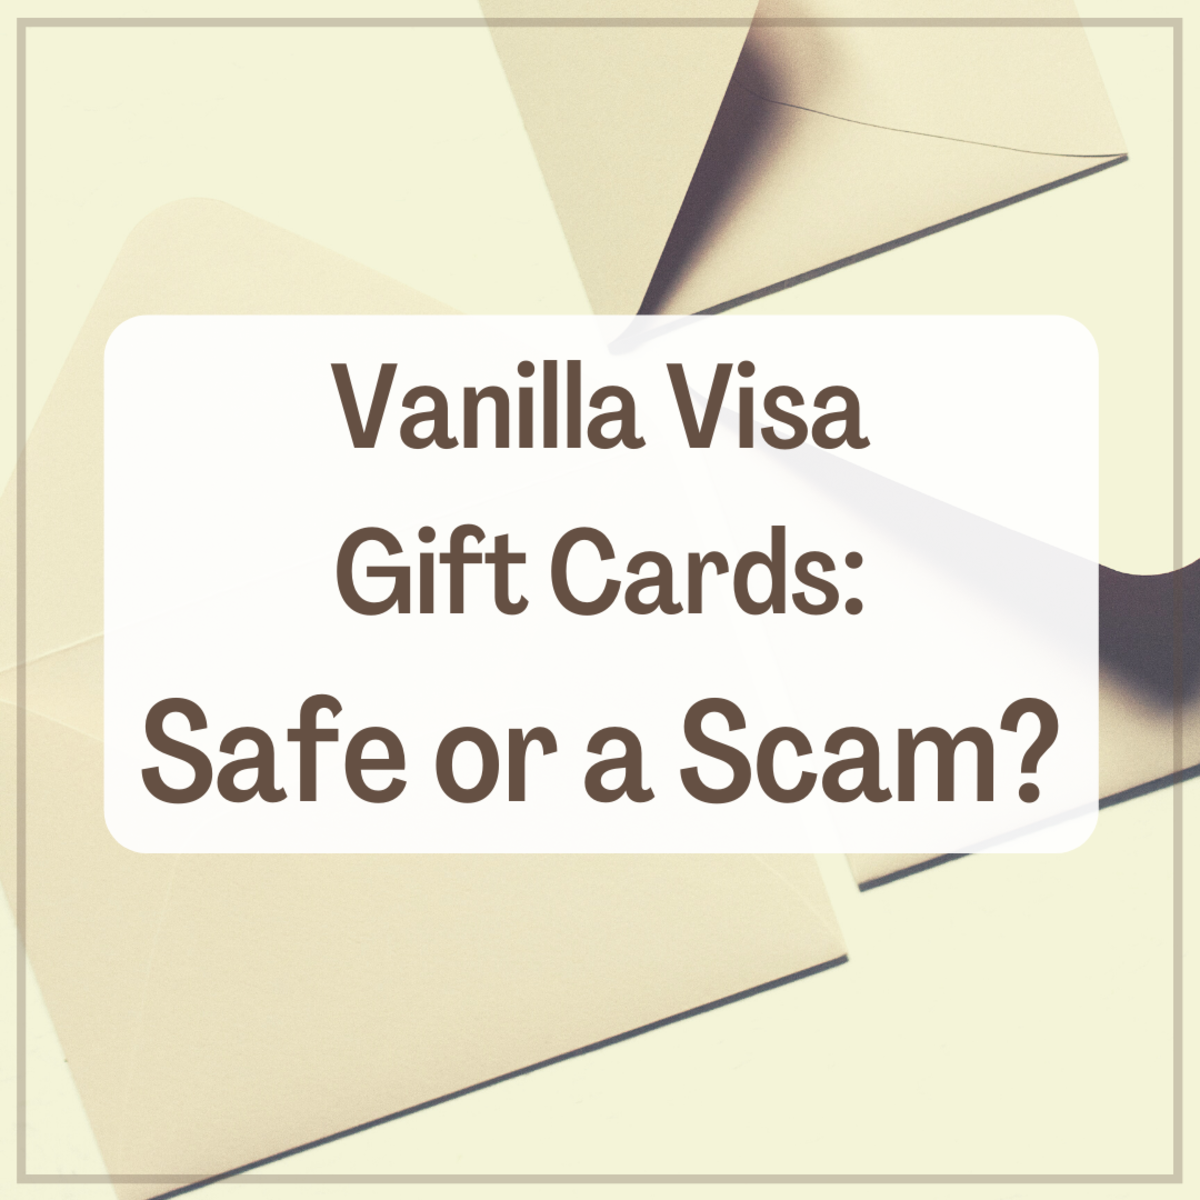 Is the Vanilla Visa Gift Card a Scam? (My Experience)